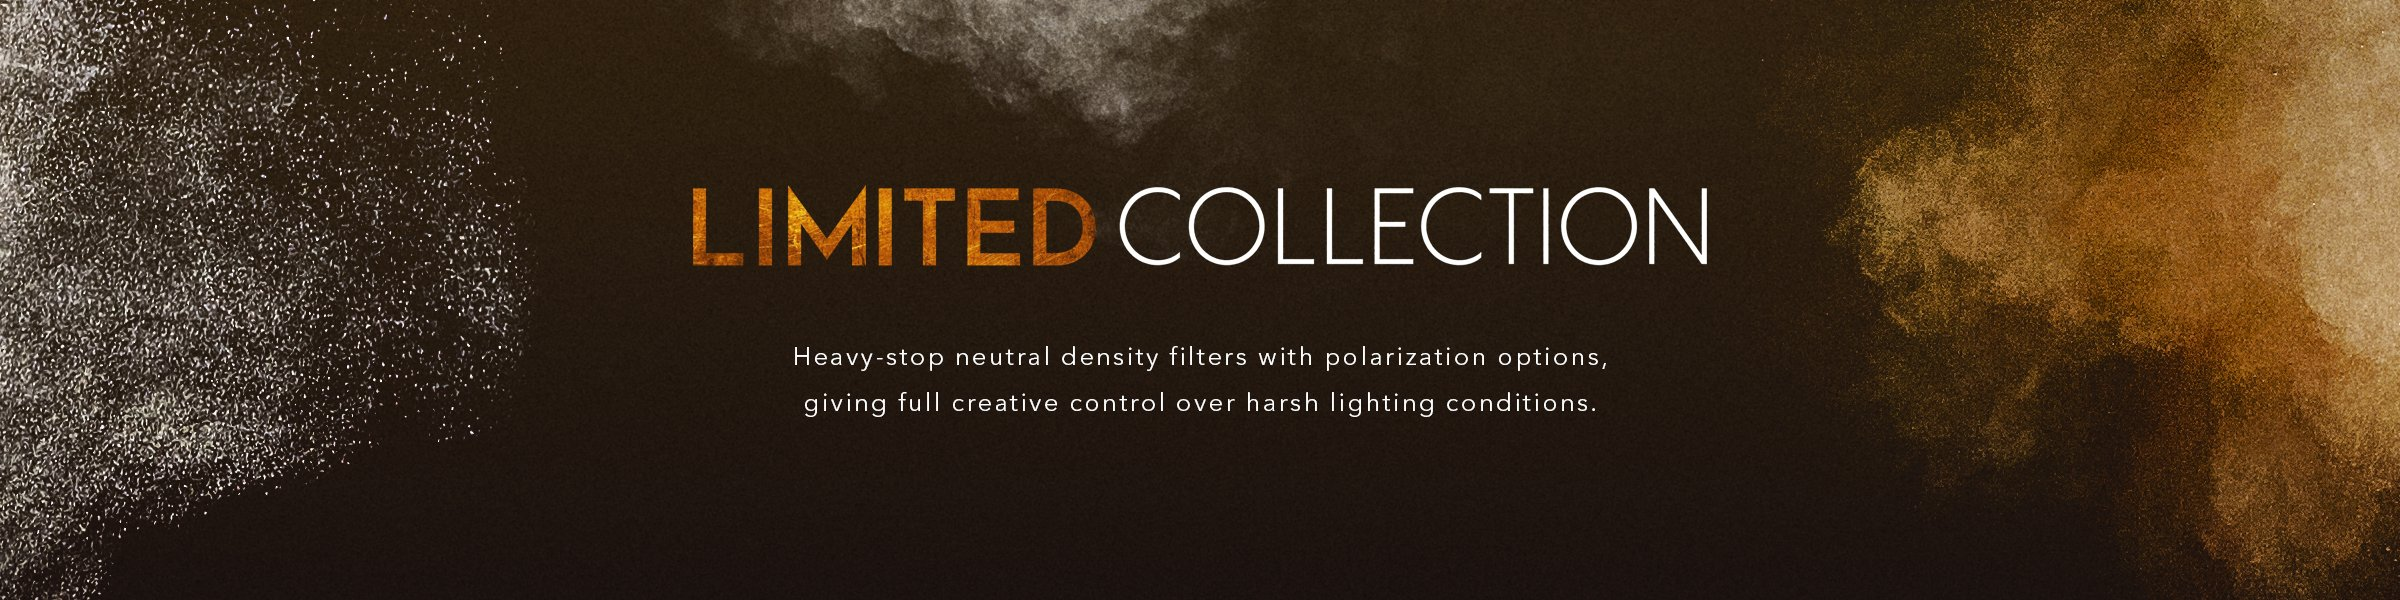 Limited_Collection_Banner-1517275026620